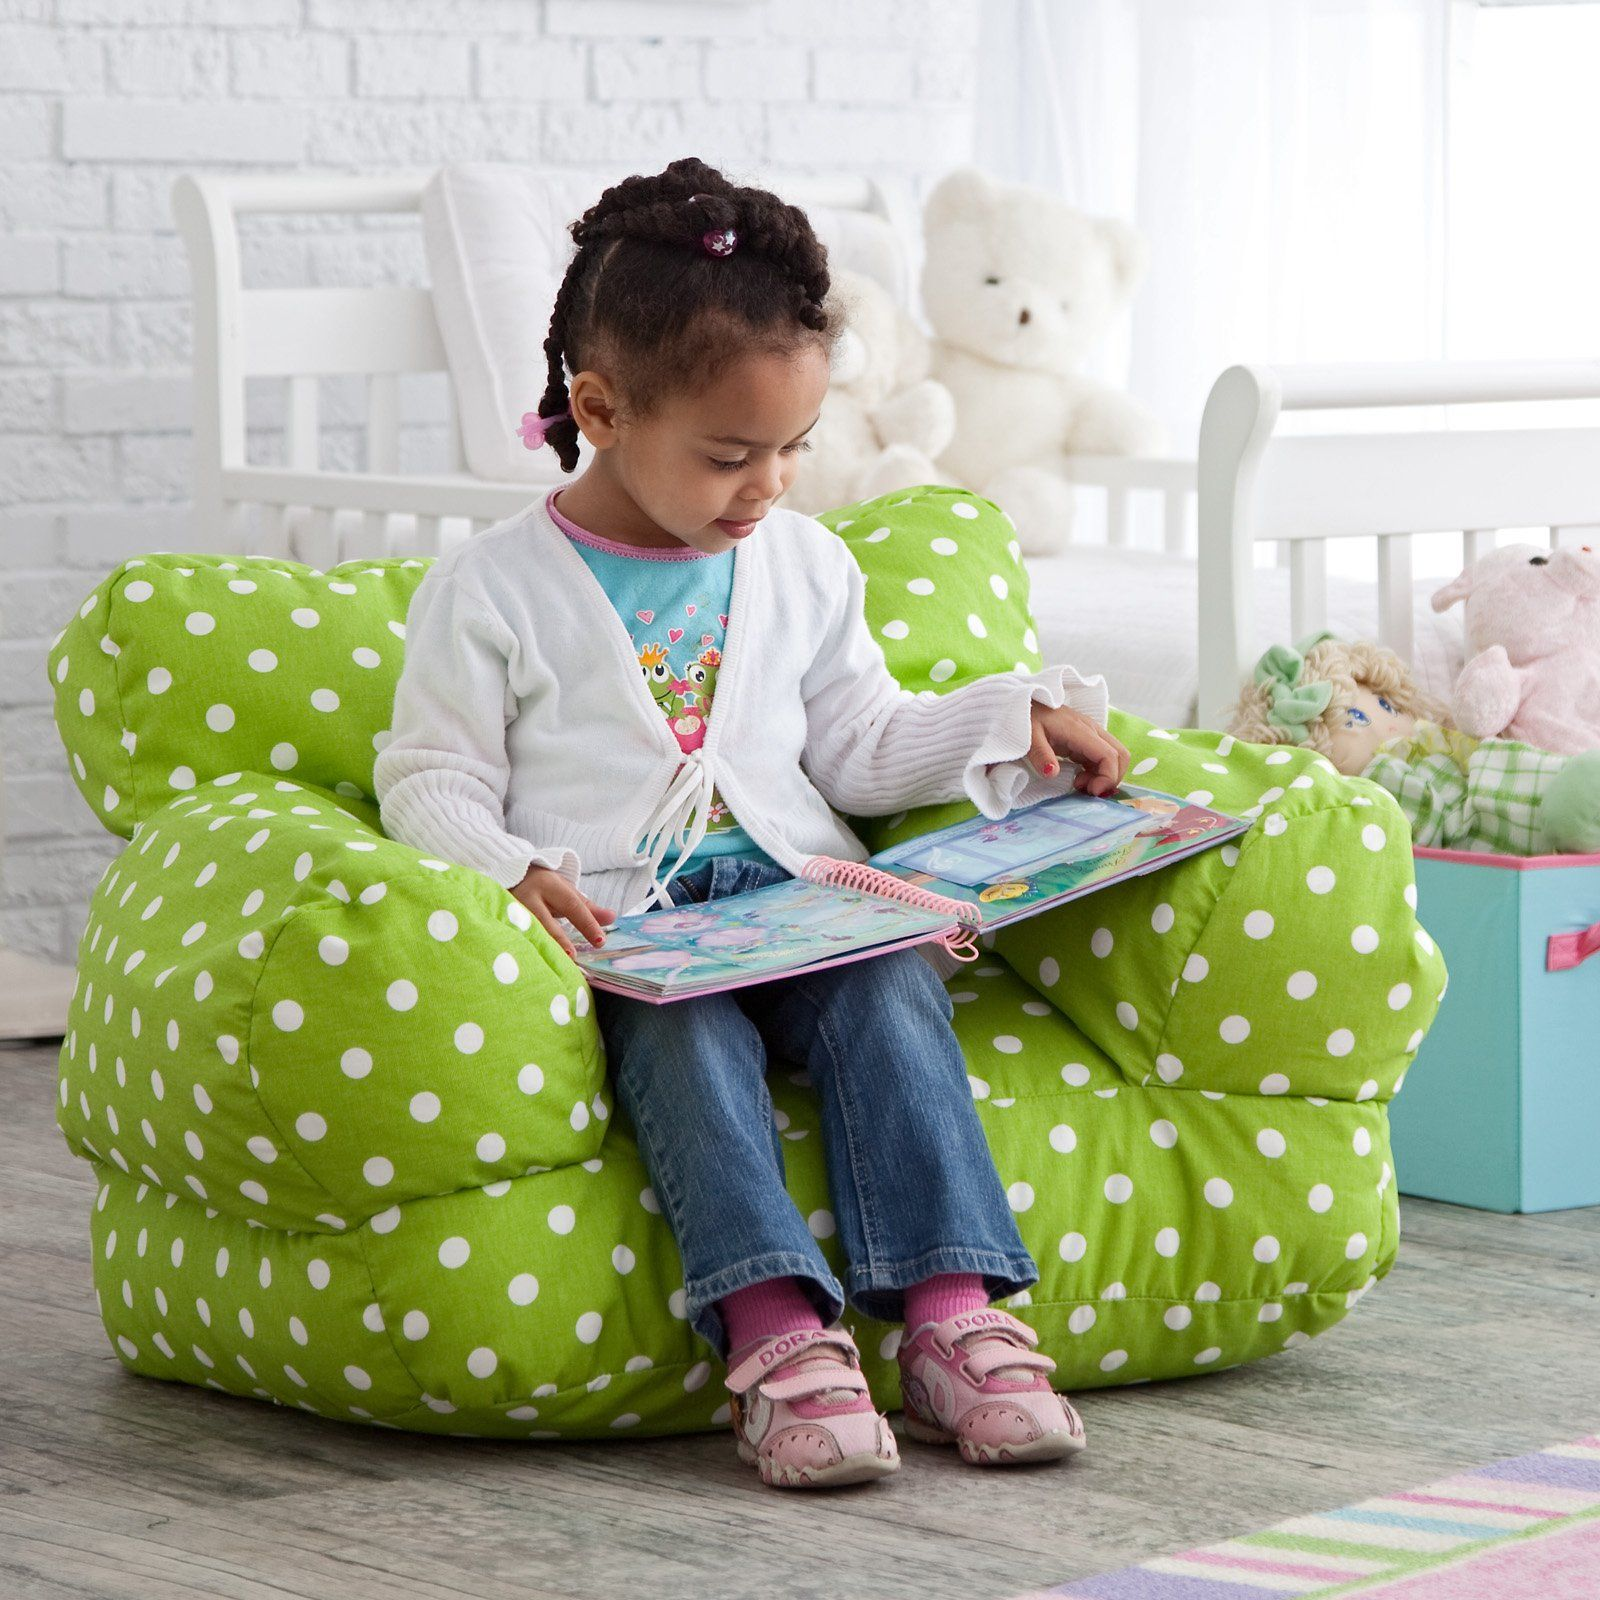 Delightful Twill Polka Dot Mi Kids Bean Bag Chair. Wonder If I Can Make This!